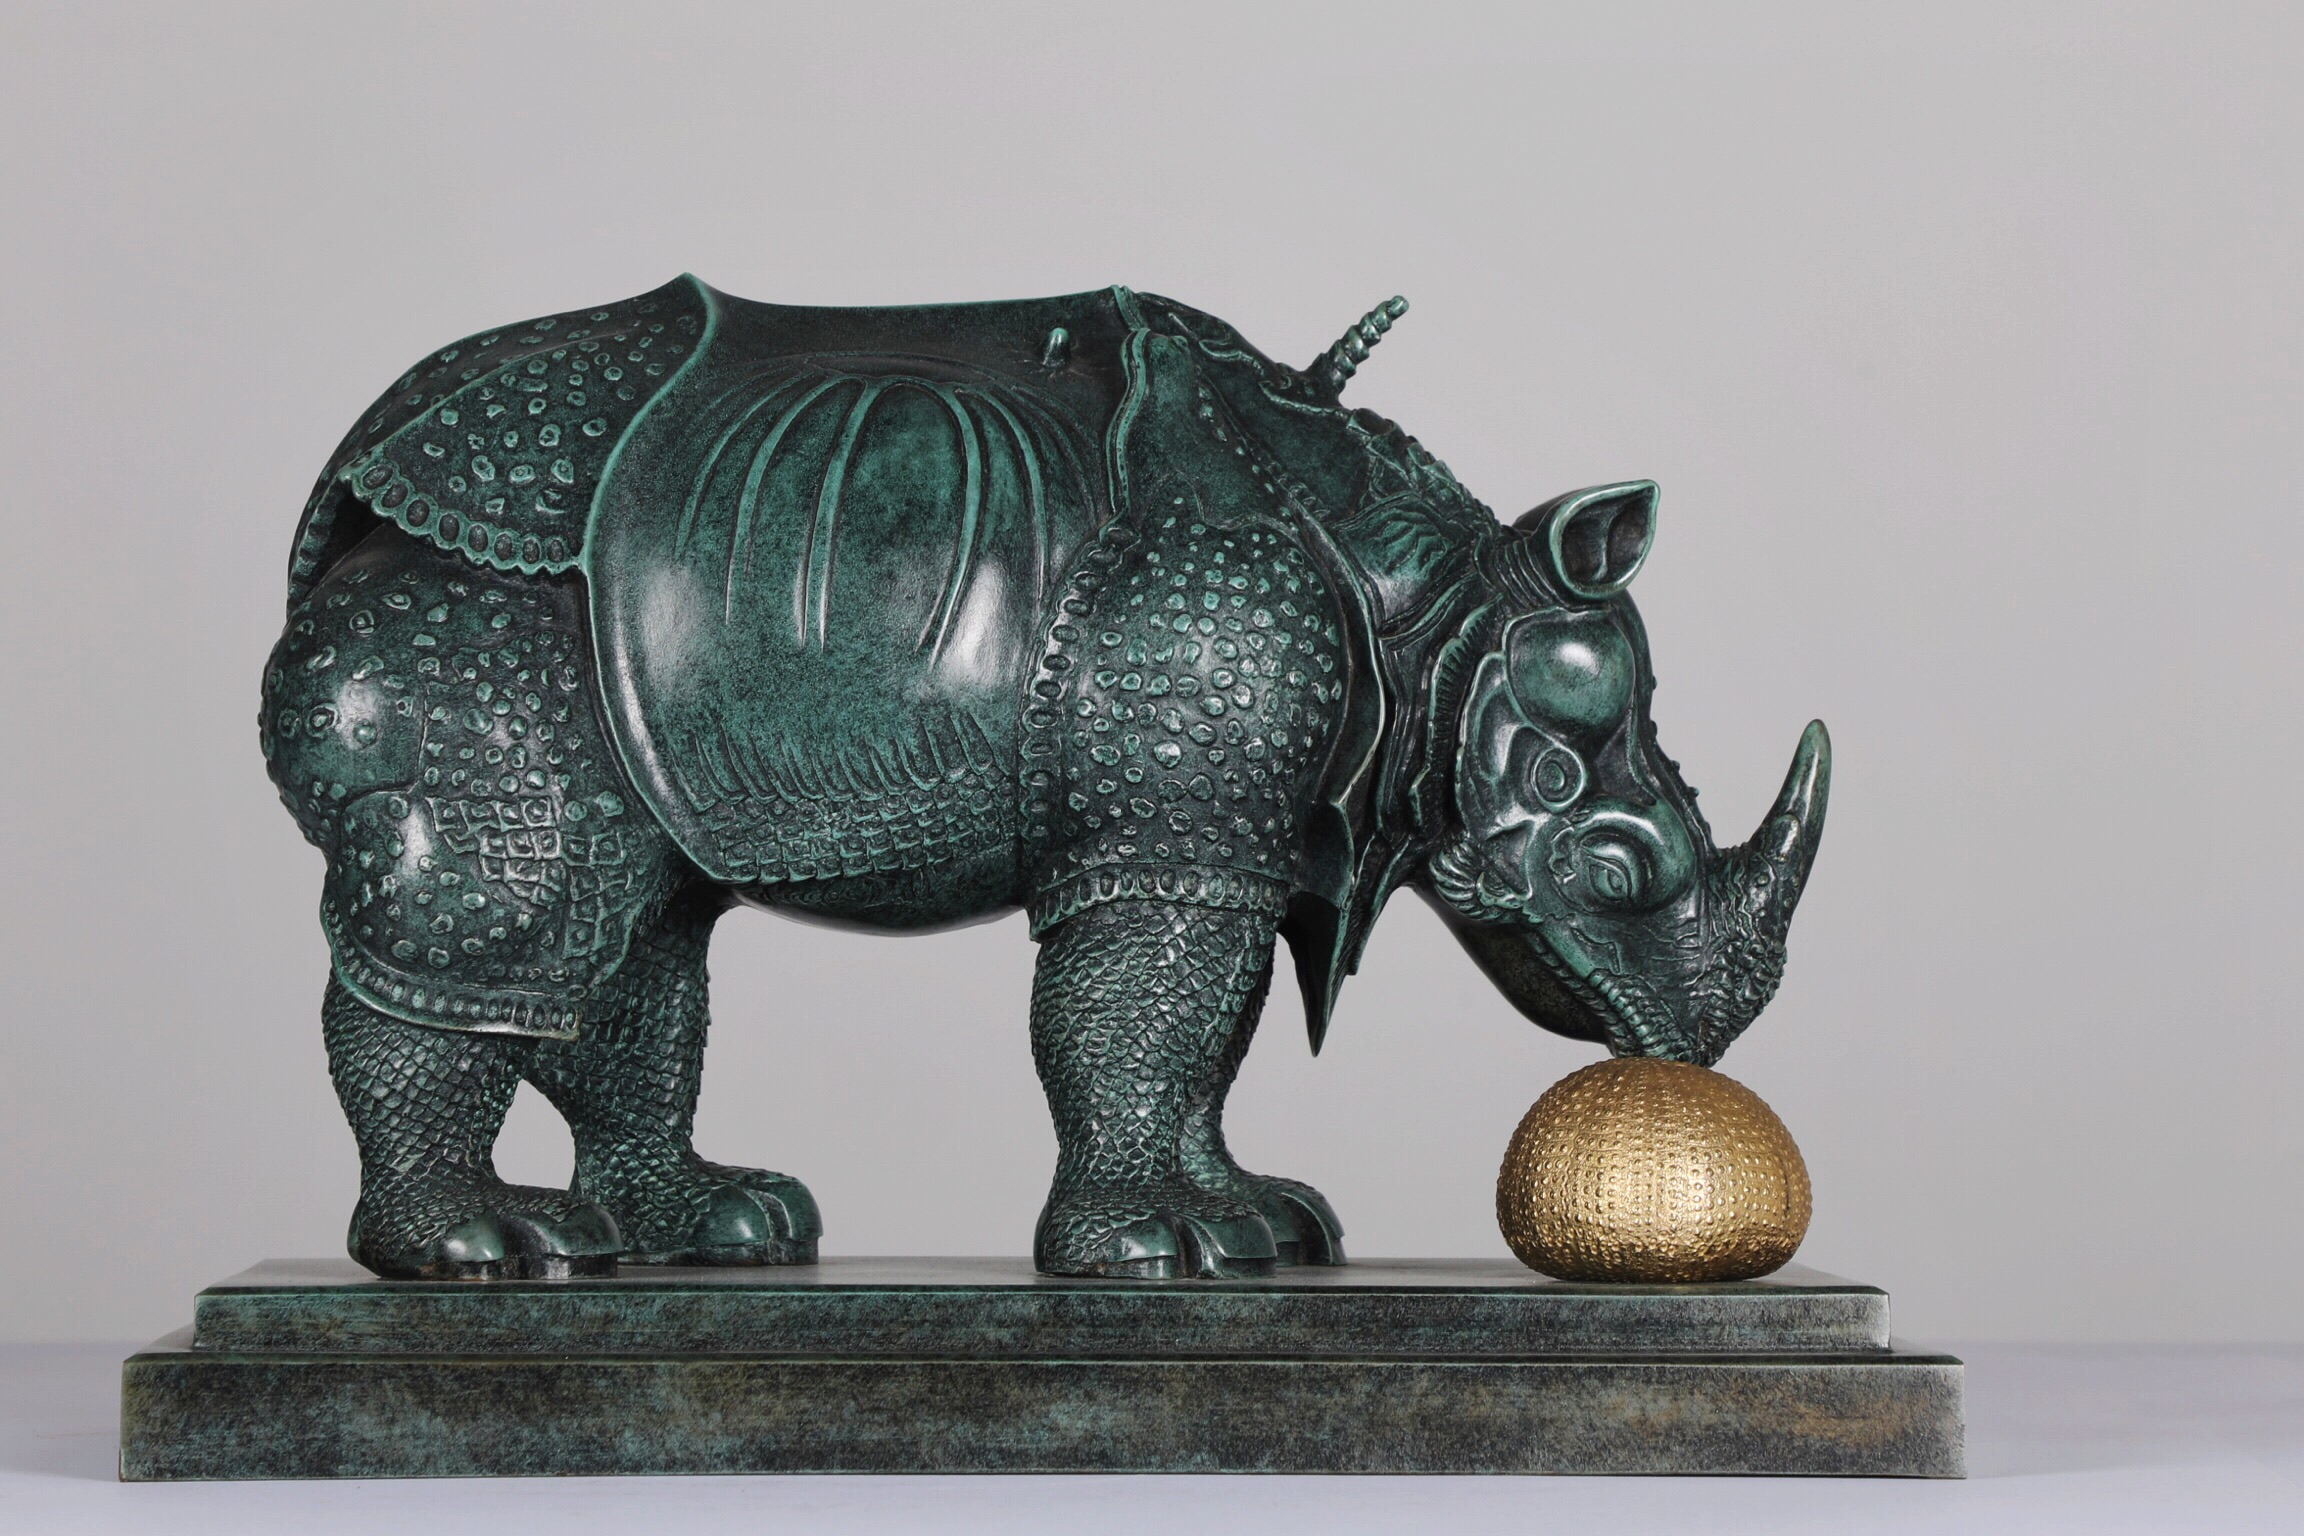 Grand Rhino En Dentelles - 1954Bronze305/499Available in 2 sizes: 21 cm and 12 cm